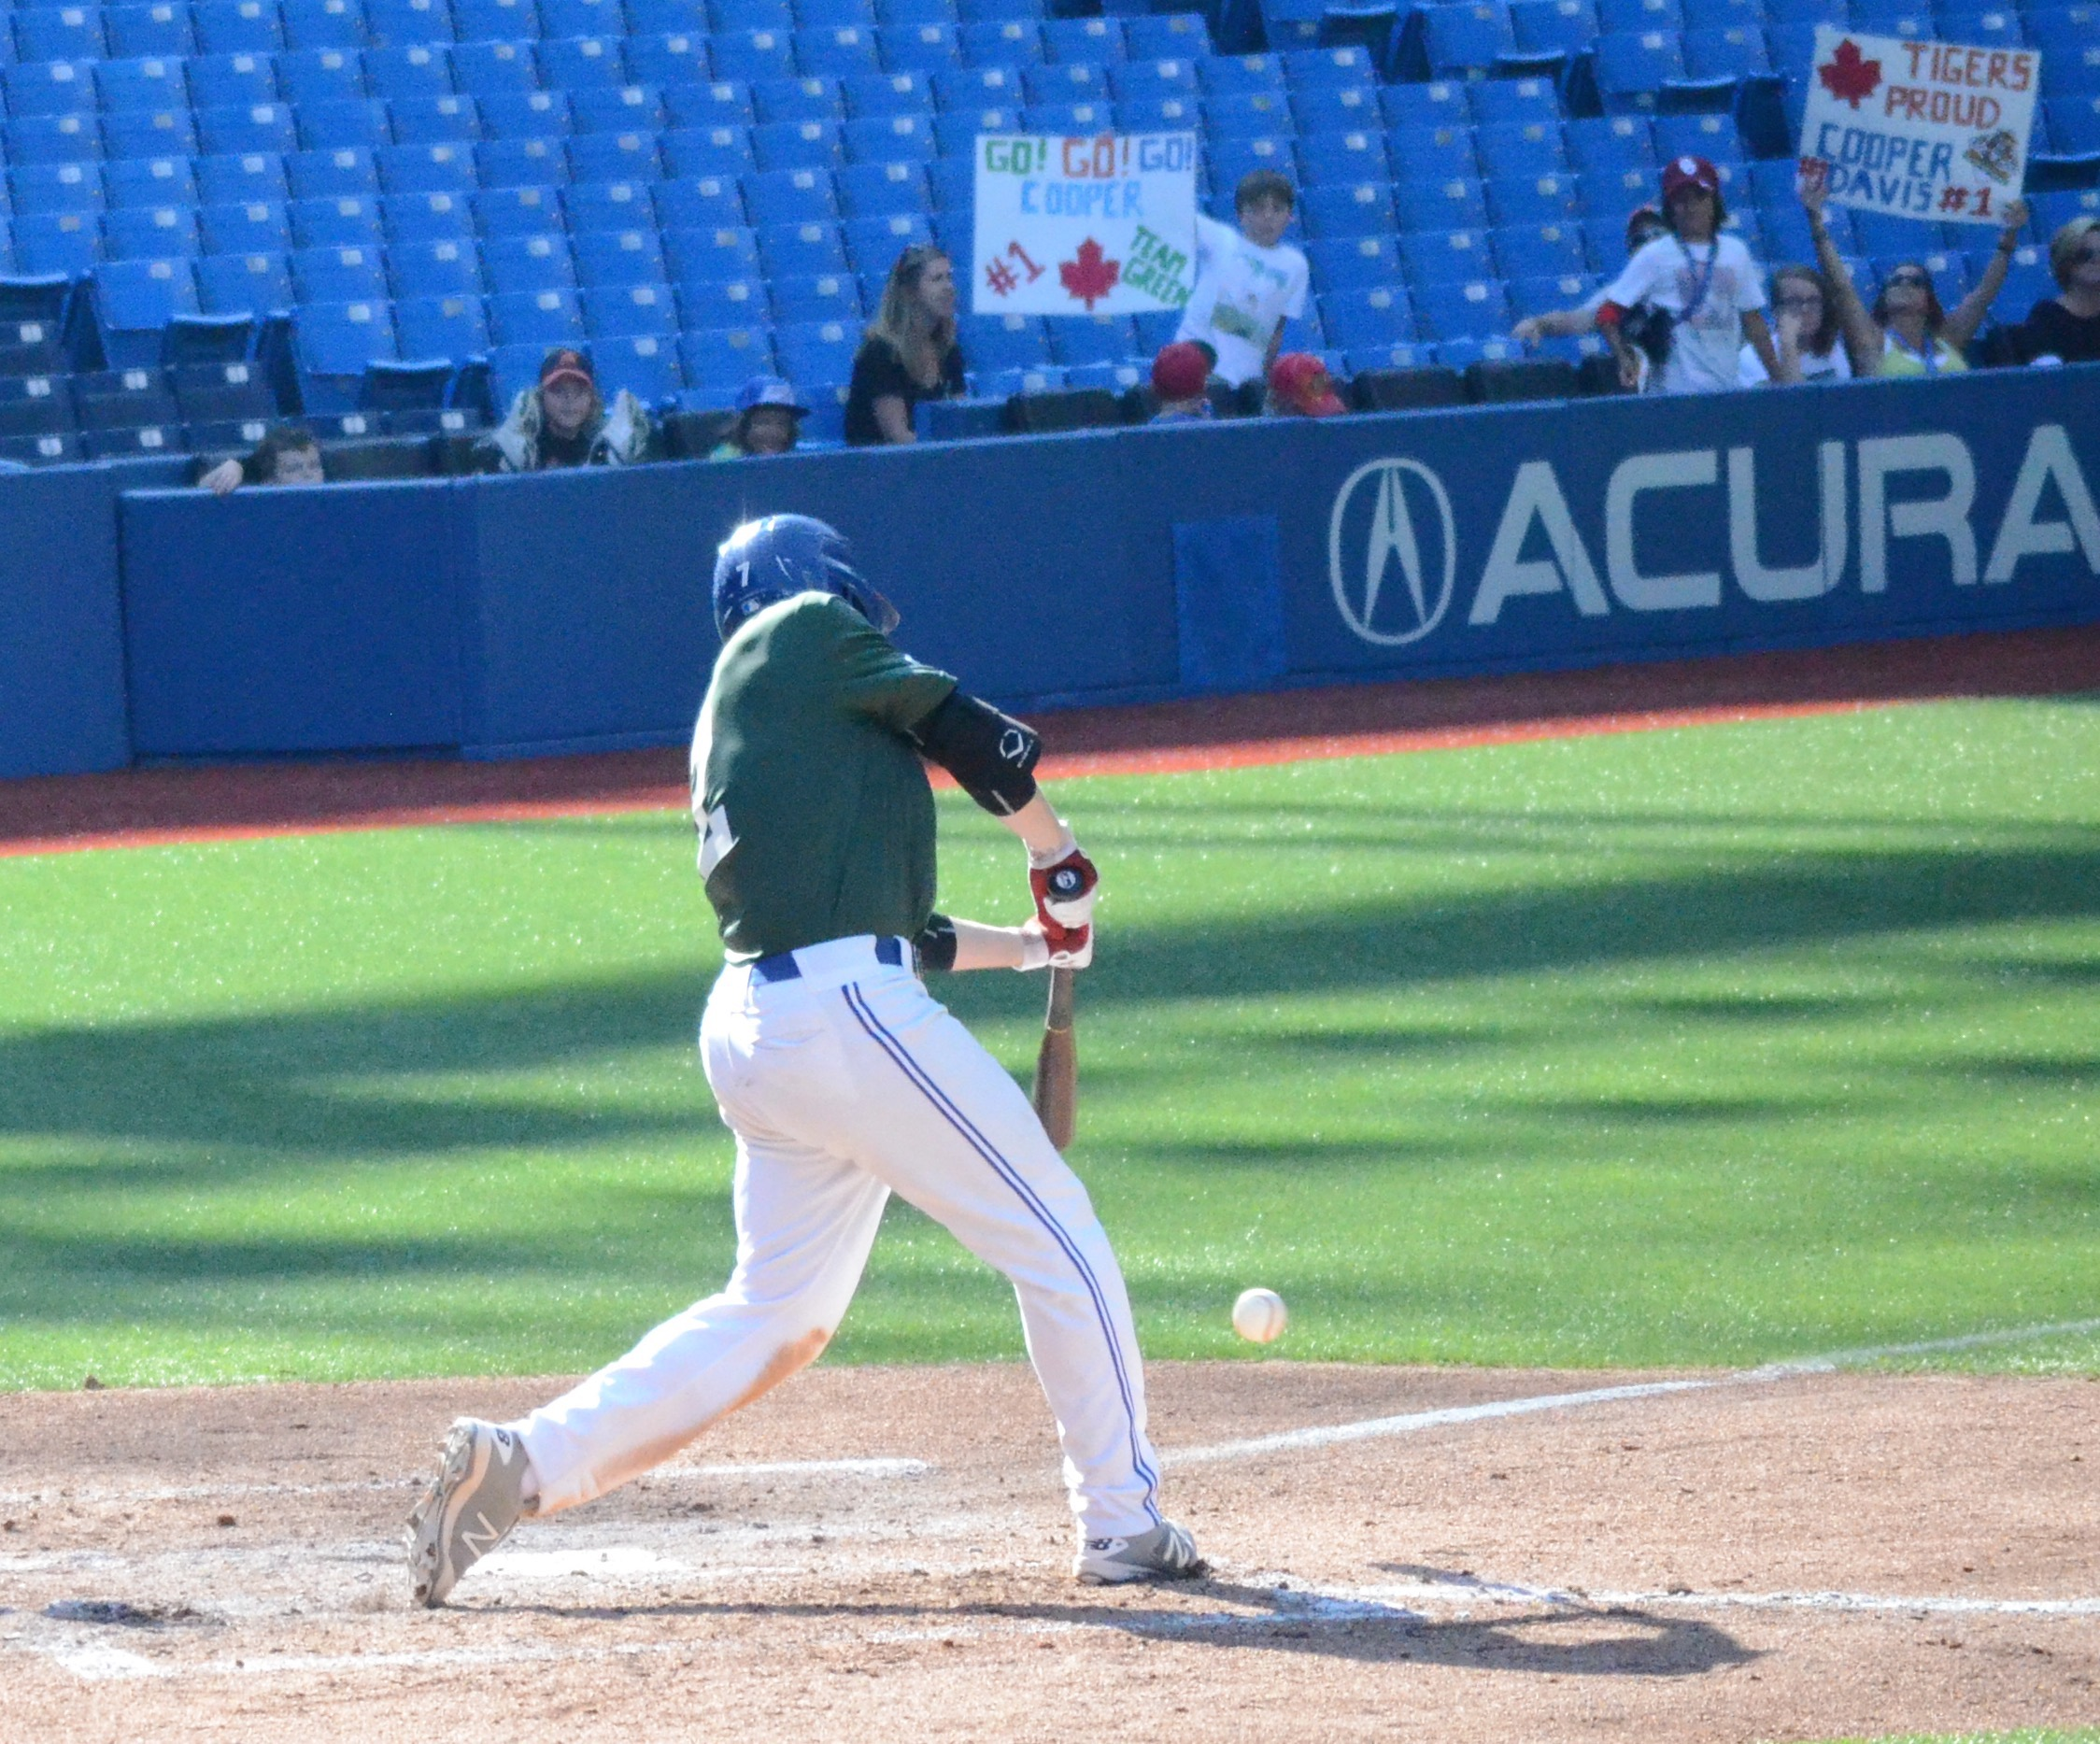 OF Cooper Davis (Mississauga, Ont.) of the Ontario Blue Jays had his own fan club and they came bearing signs.